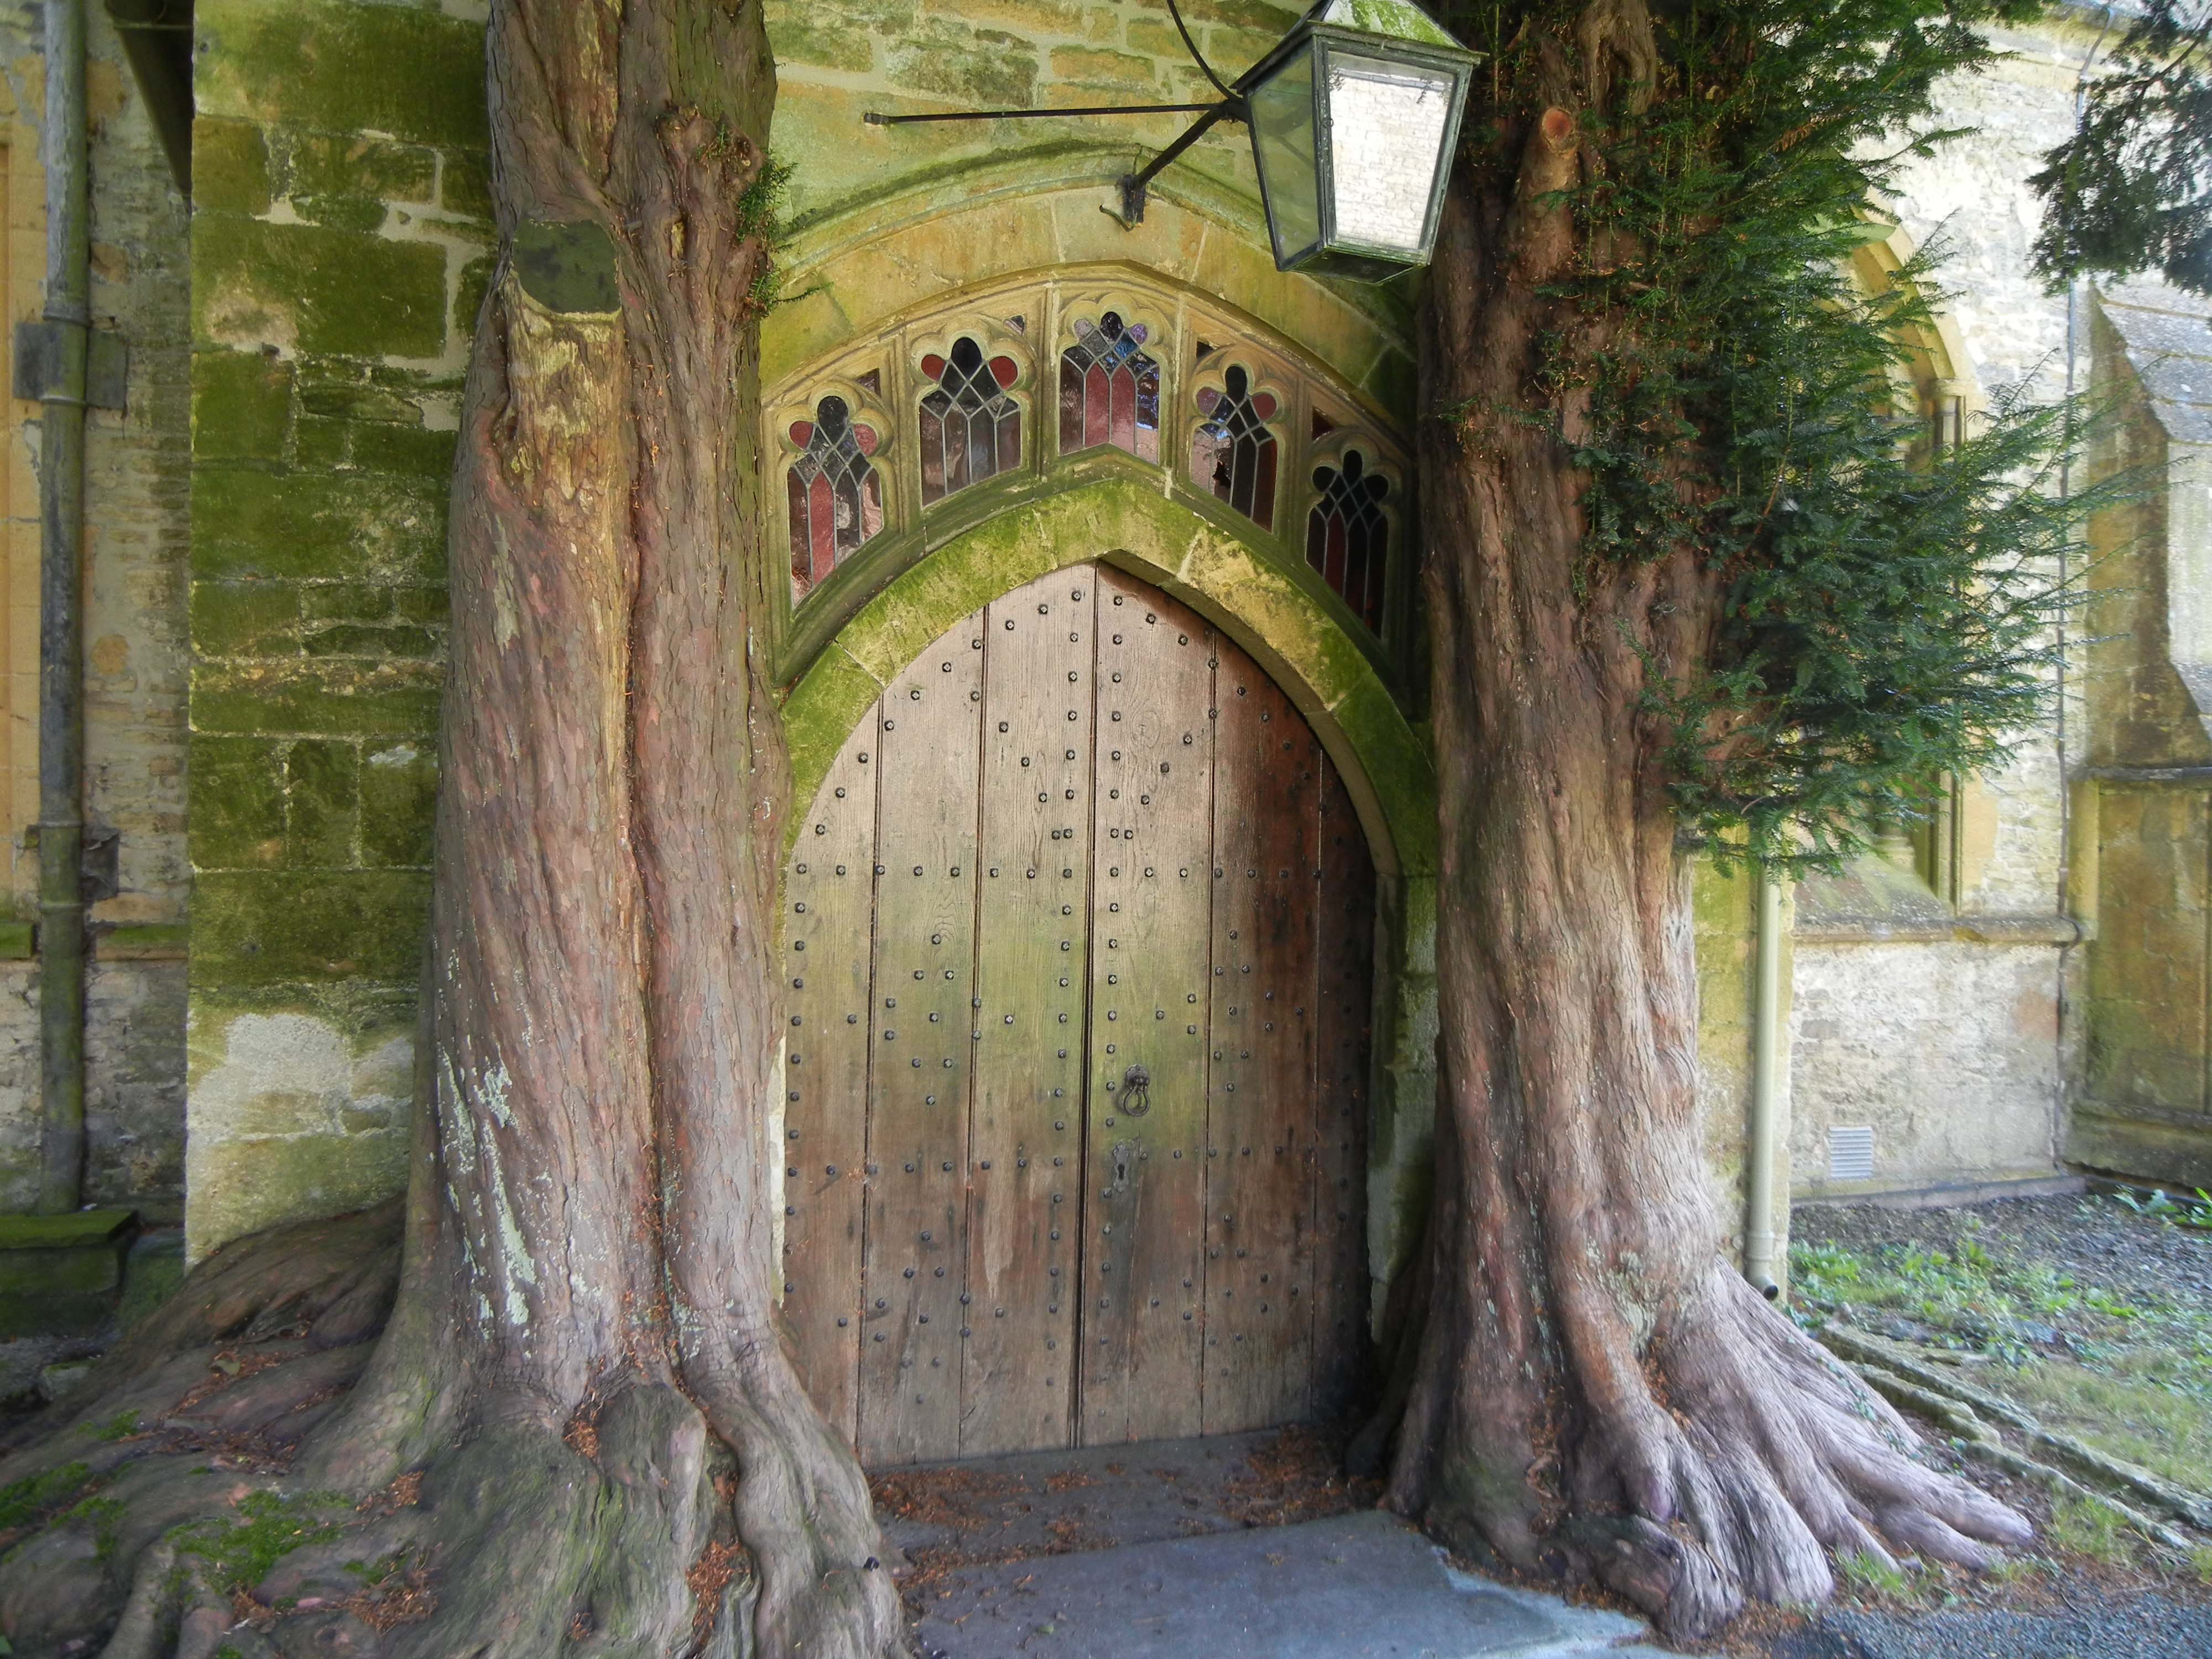 These medieval parish church doors in England, flanked by two ancient Yew trees, are believed to be the inspiration for the Doors of Durin from J.R.R. Tolkien's Lord of the Rings.